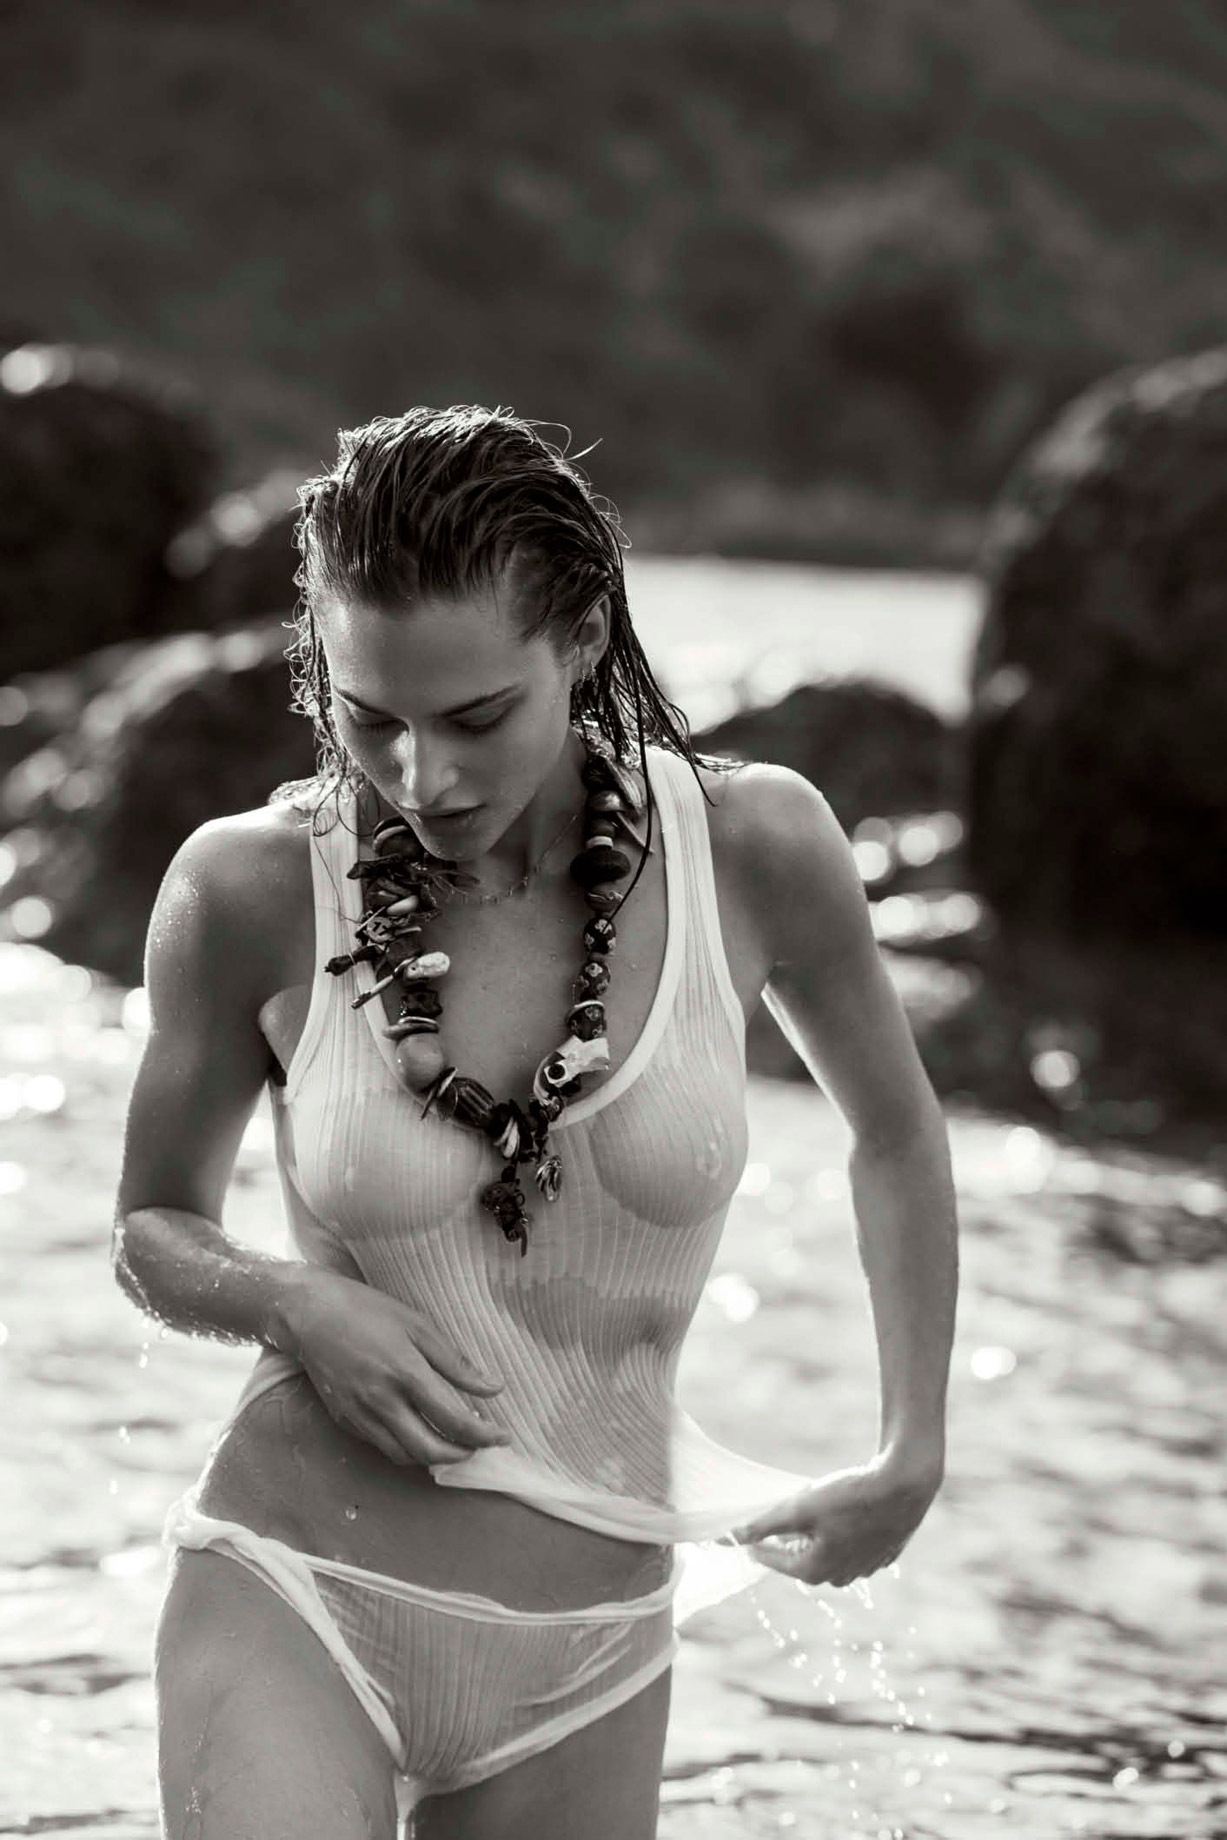 Лана Закосела / Lana Zakocela by Gilles Bensimon - Maxim US may 2017